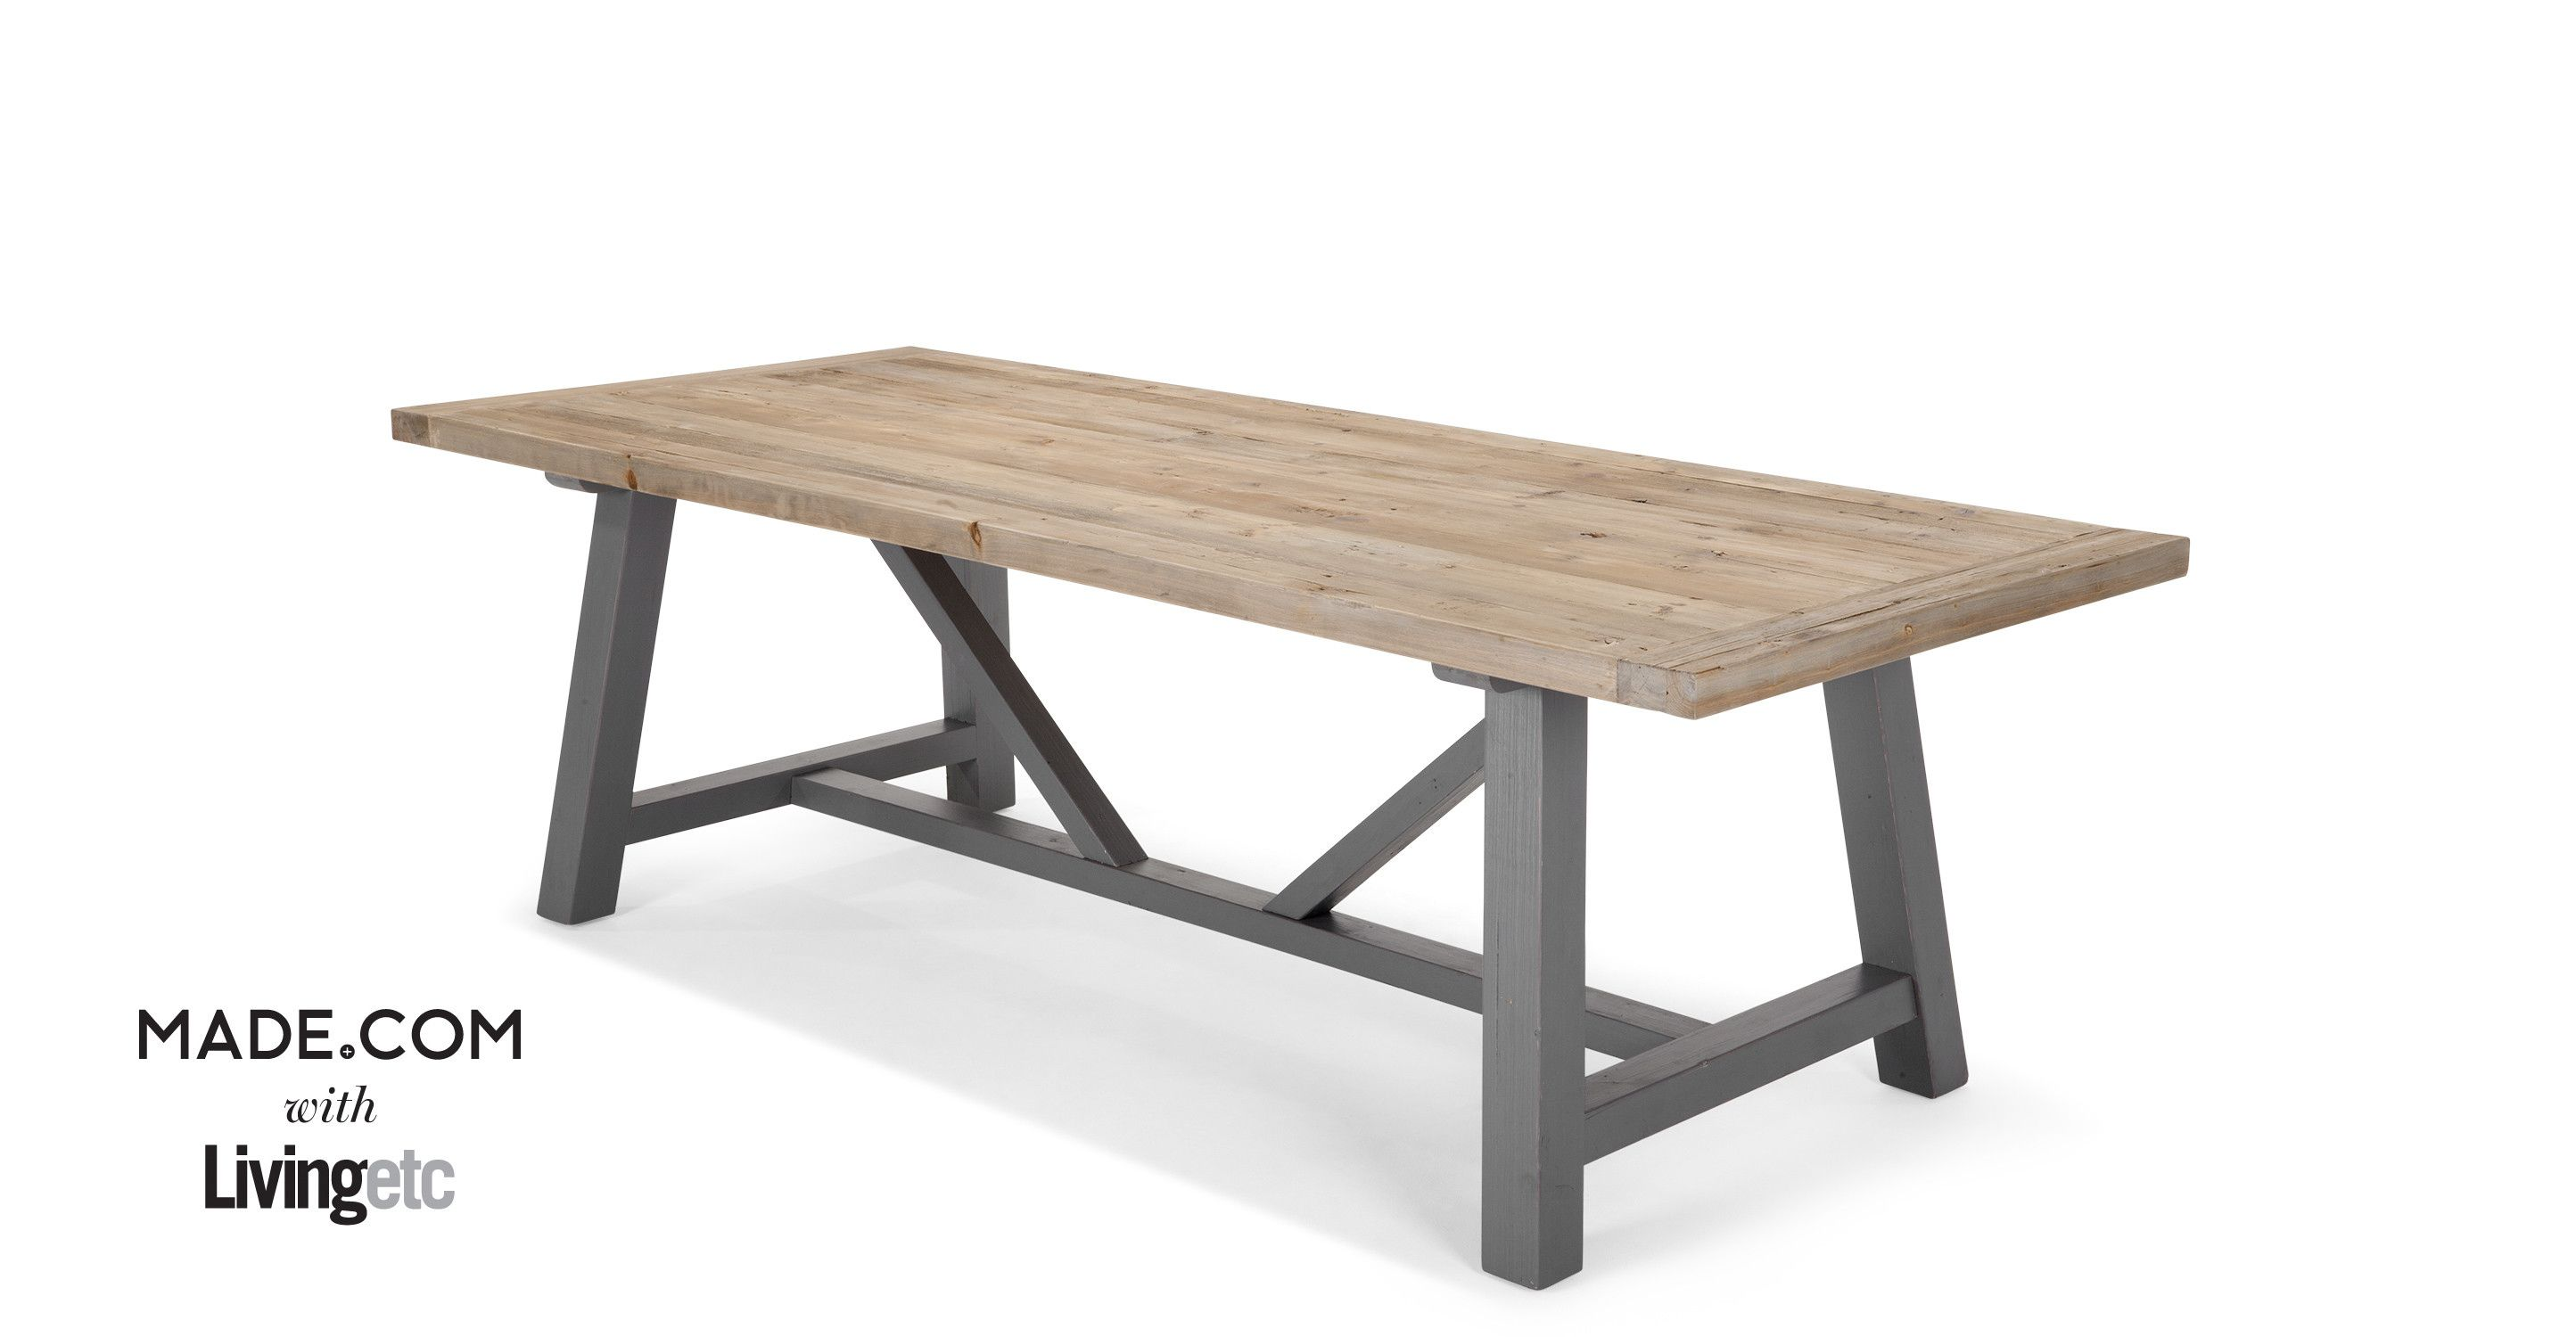 Iona dining table solid wood and grey made kitchen dining iona dining table solid wood and grey made geotapseo Images